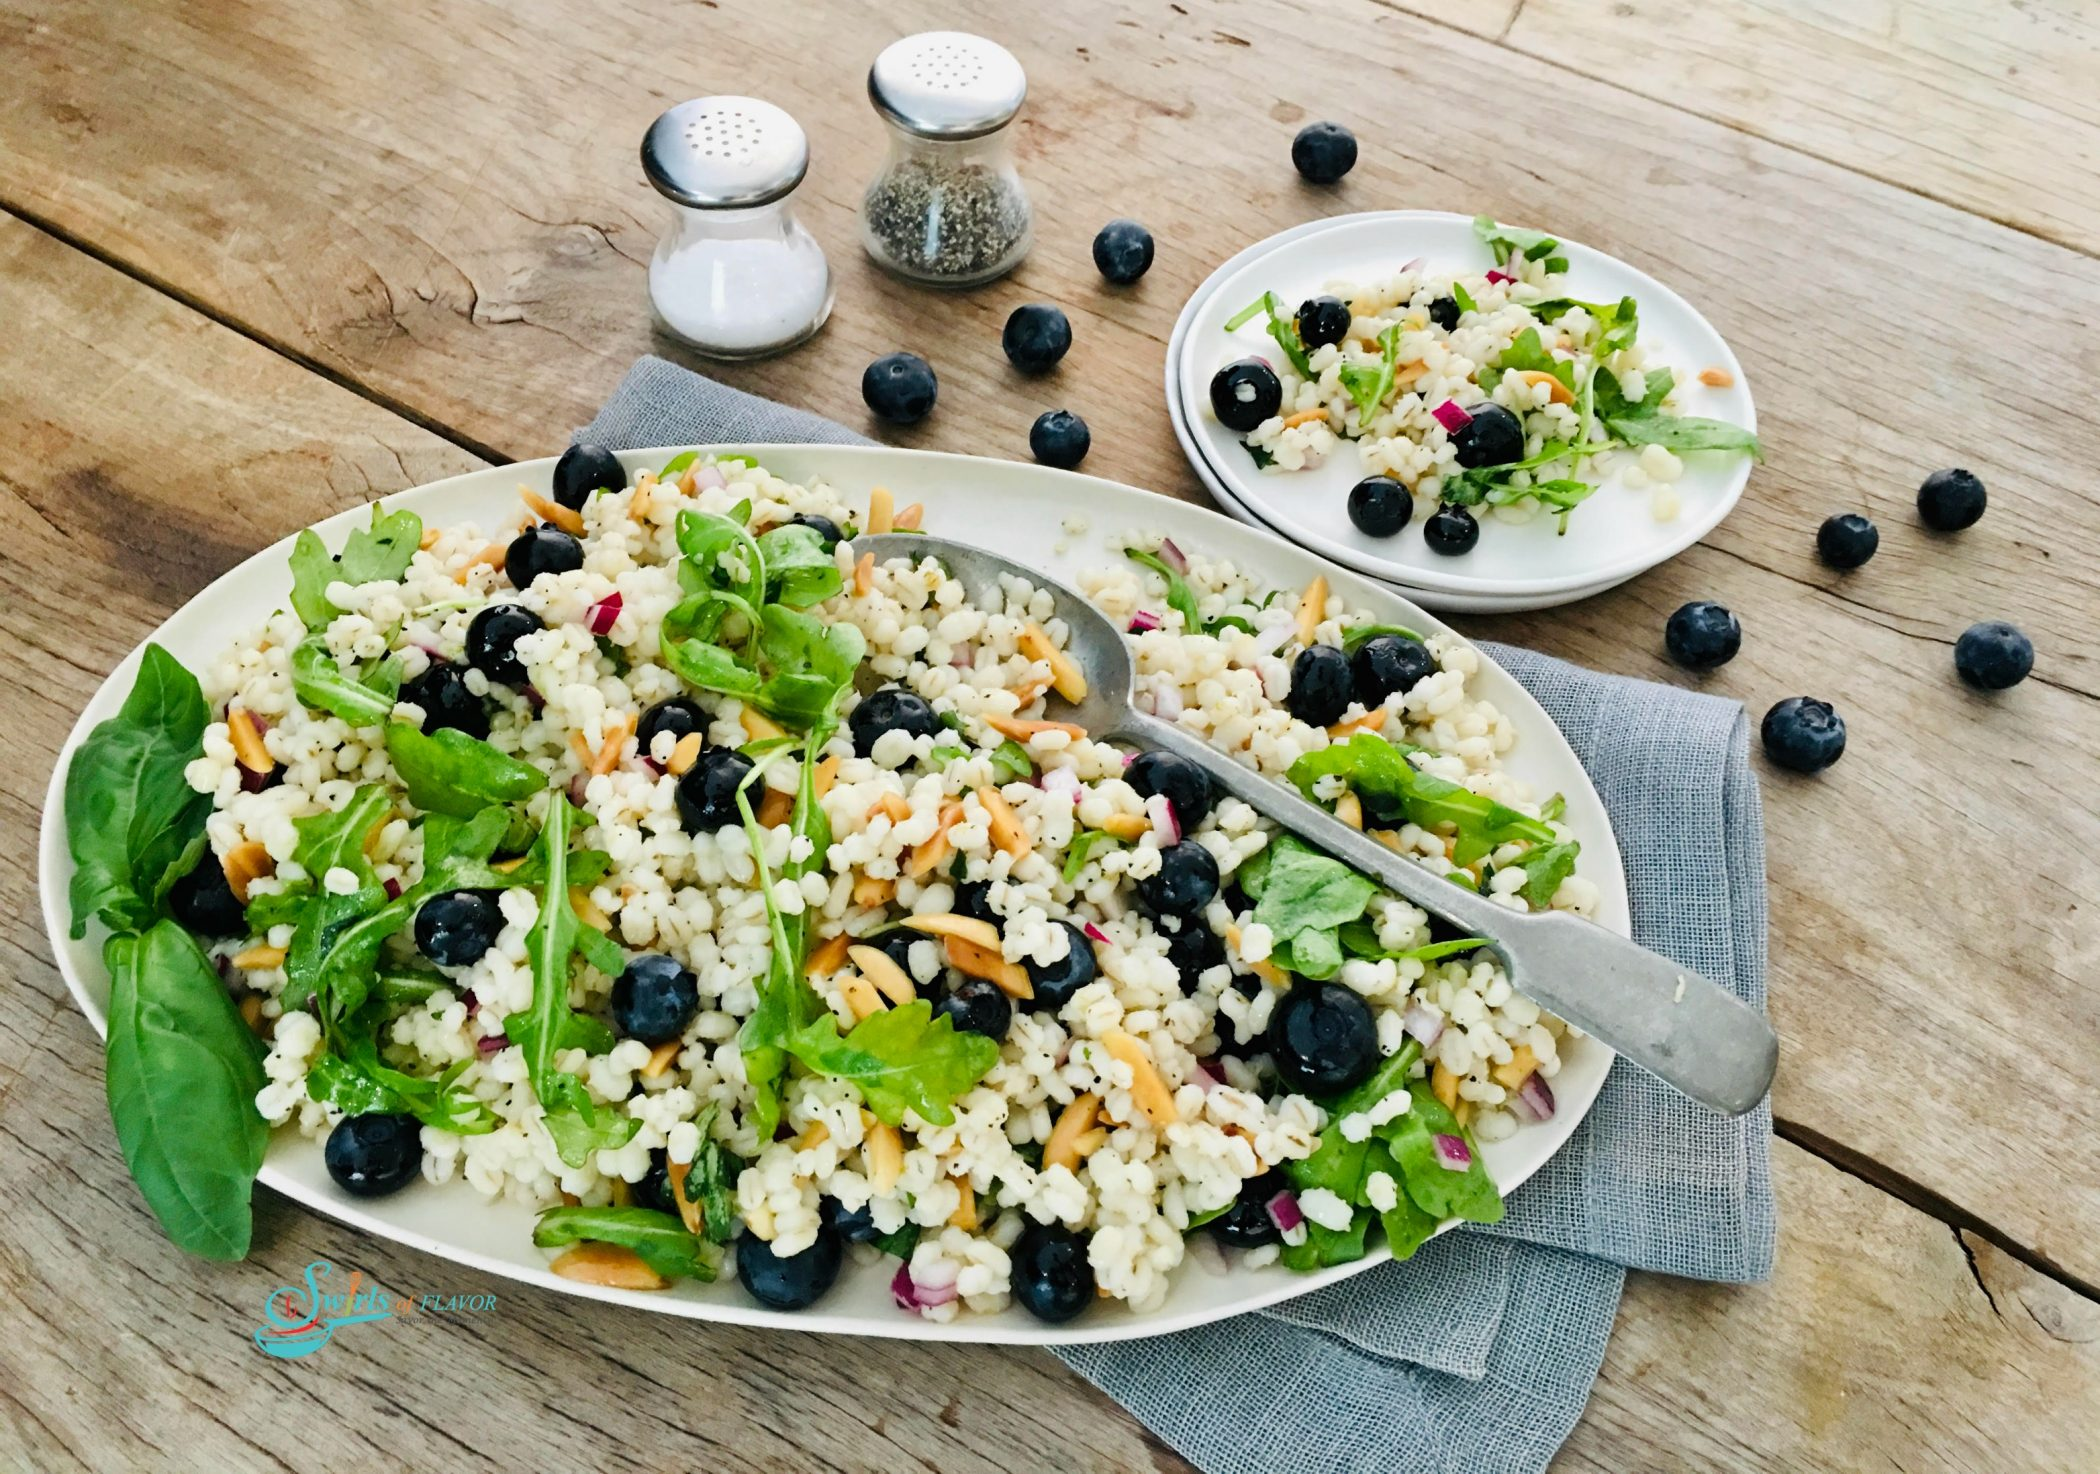 Baby greens with blueberries in a barley salad